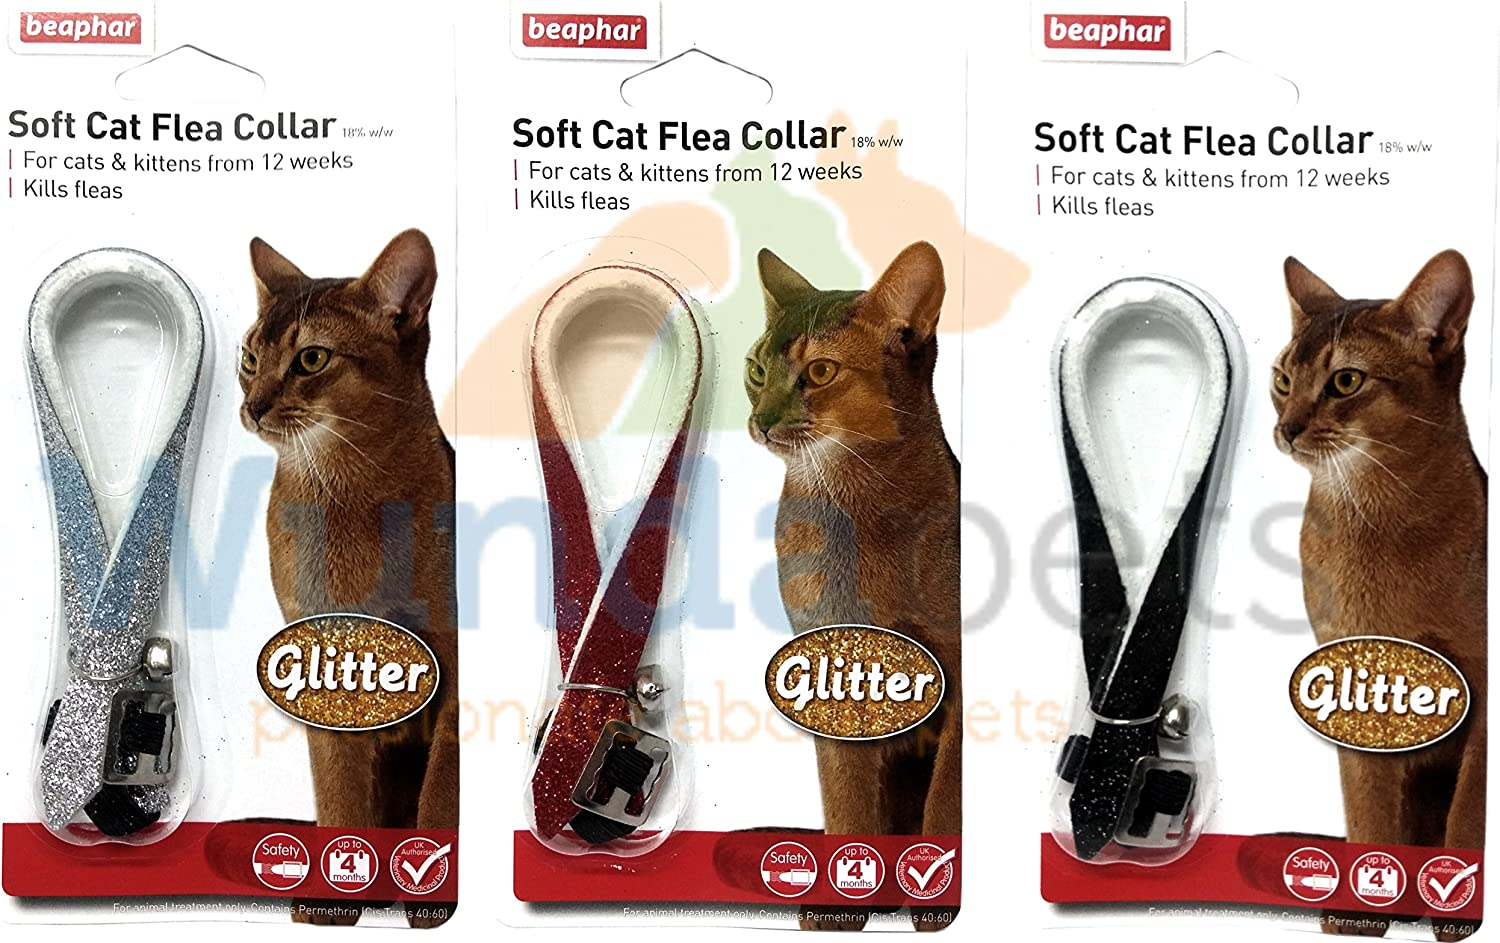 Beaphar Glitter Cat Kitten Flea Treatment Collar With Bell 3 Pack Up To 1 Years Protection Amazon Co Uk Kitchen Home